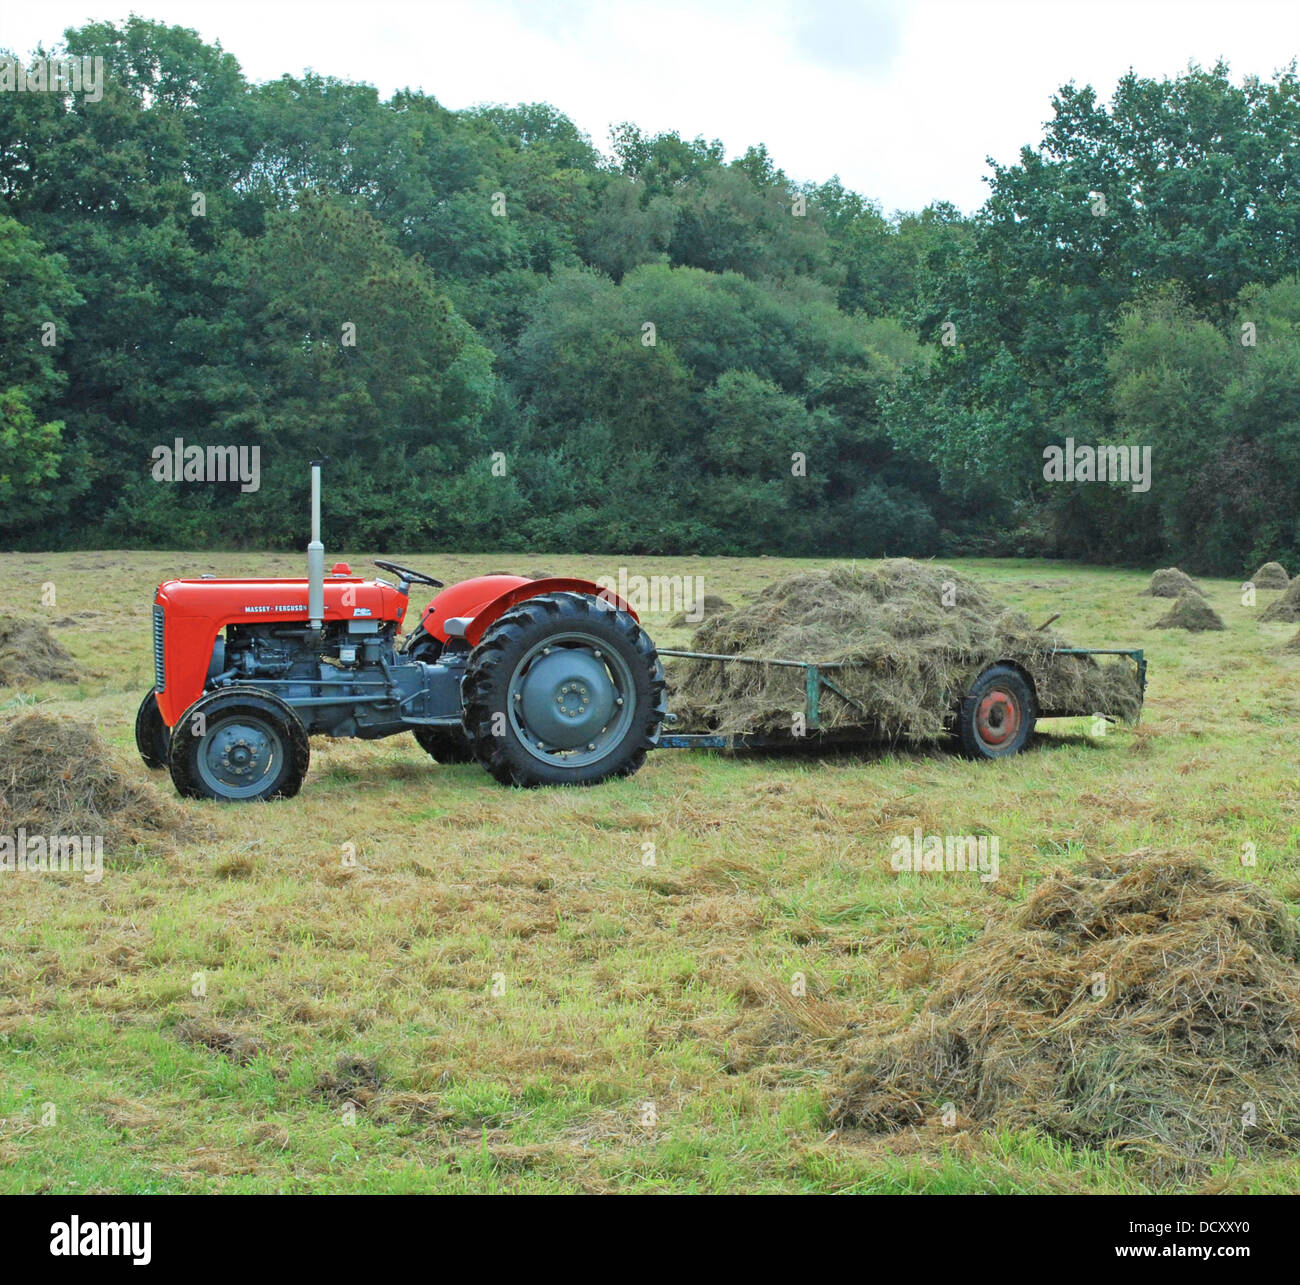 Massey Ferguson 35 tractor 1956 and still working daily - Stock Image